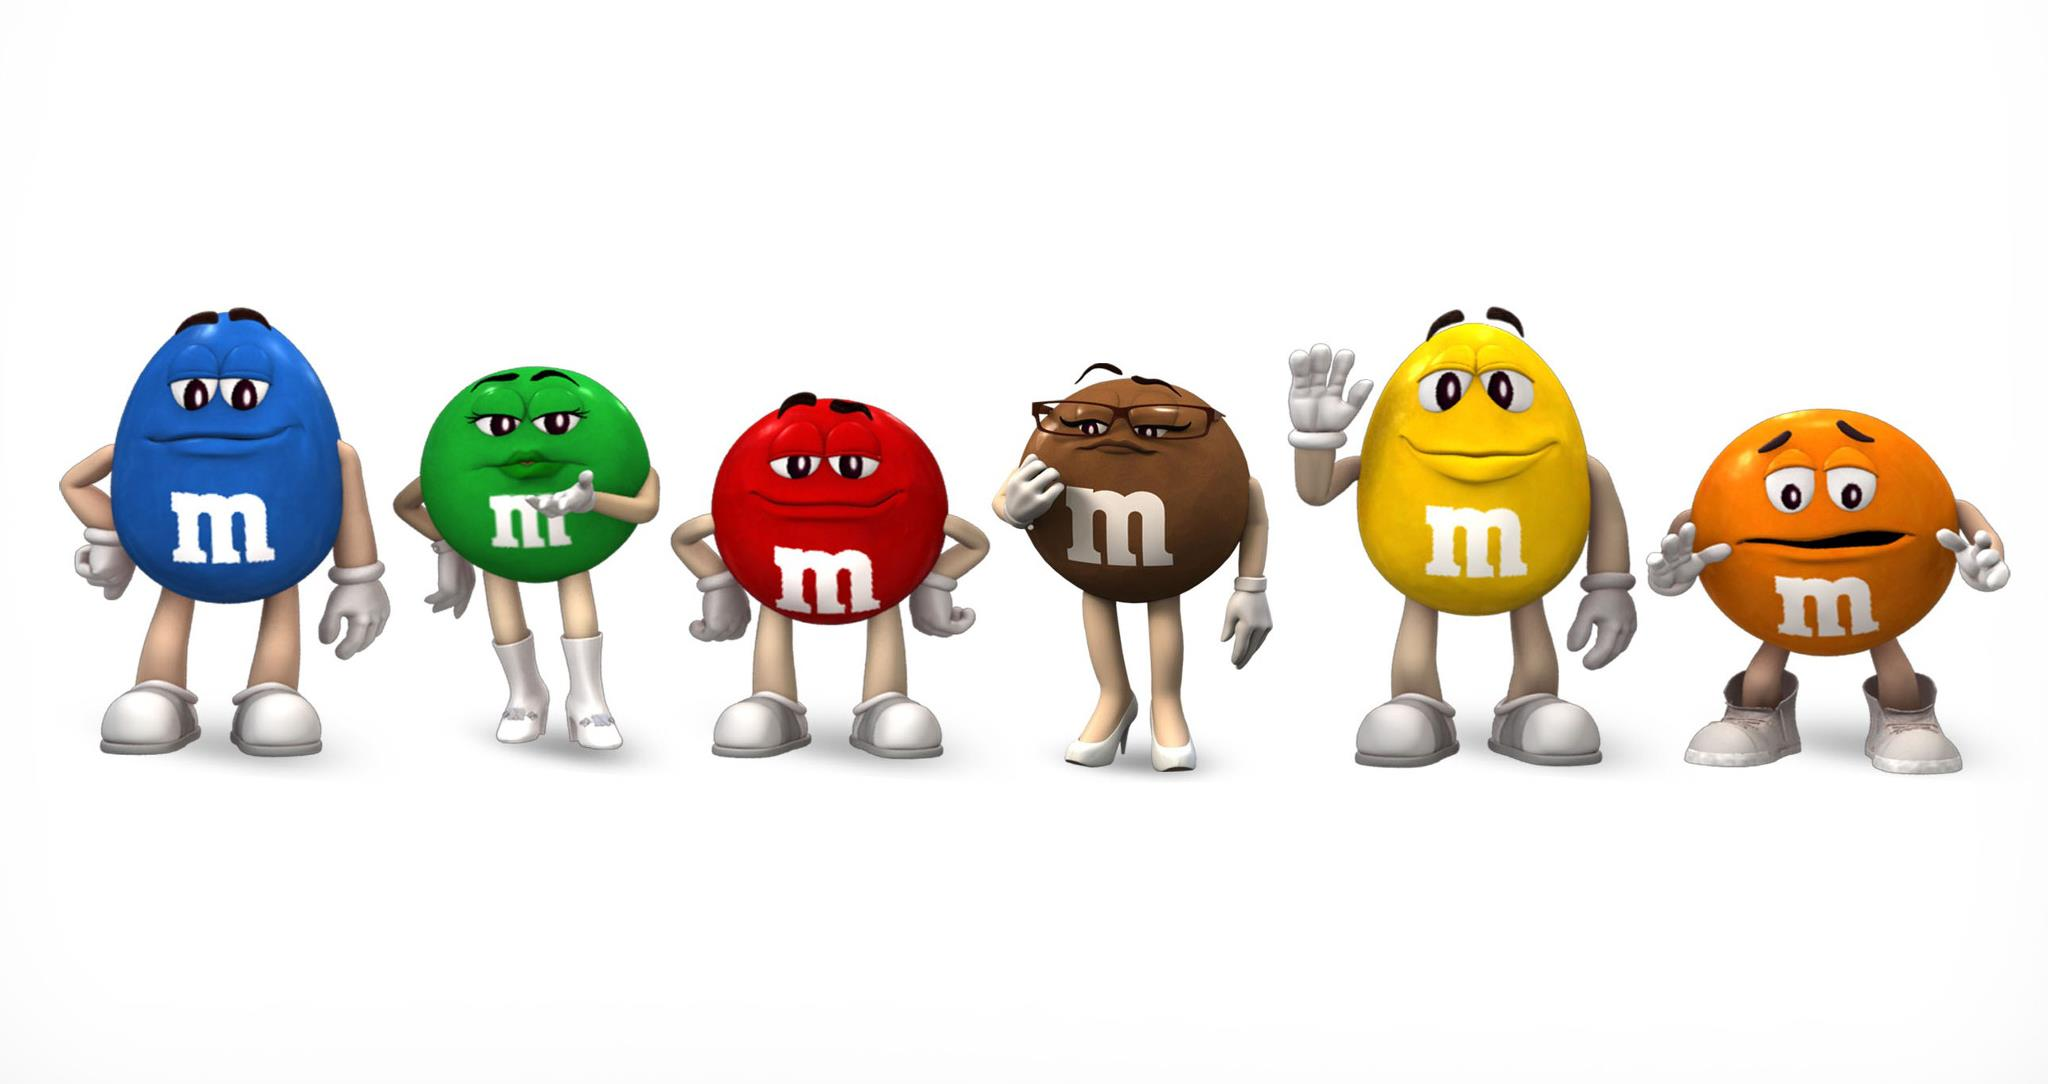 ... clipart misc m m characters the whole gang characters ...